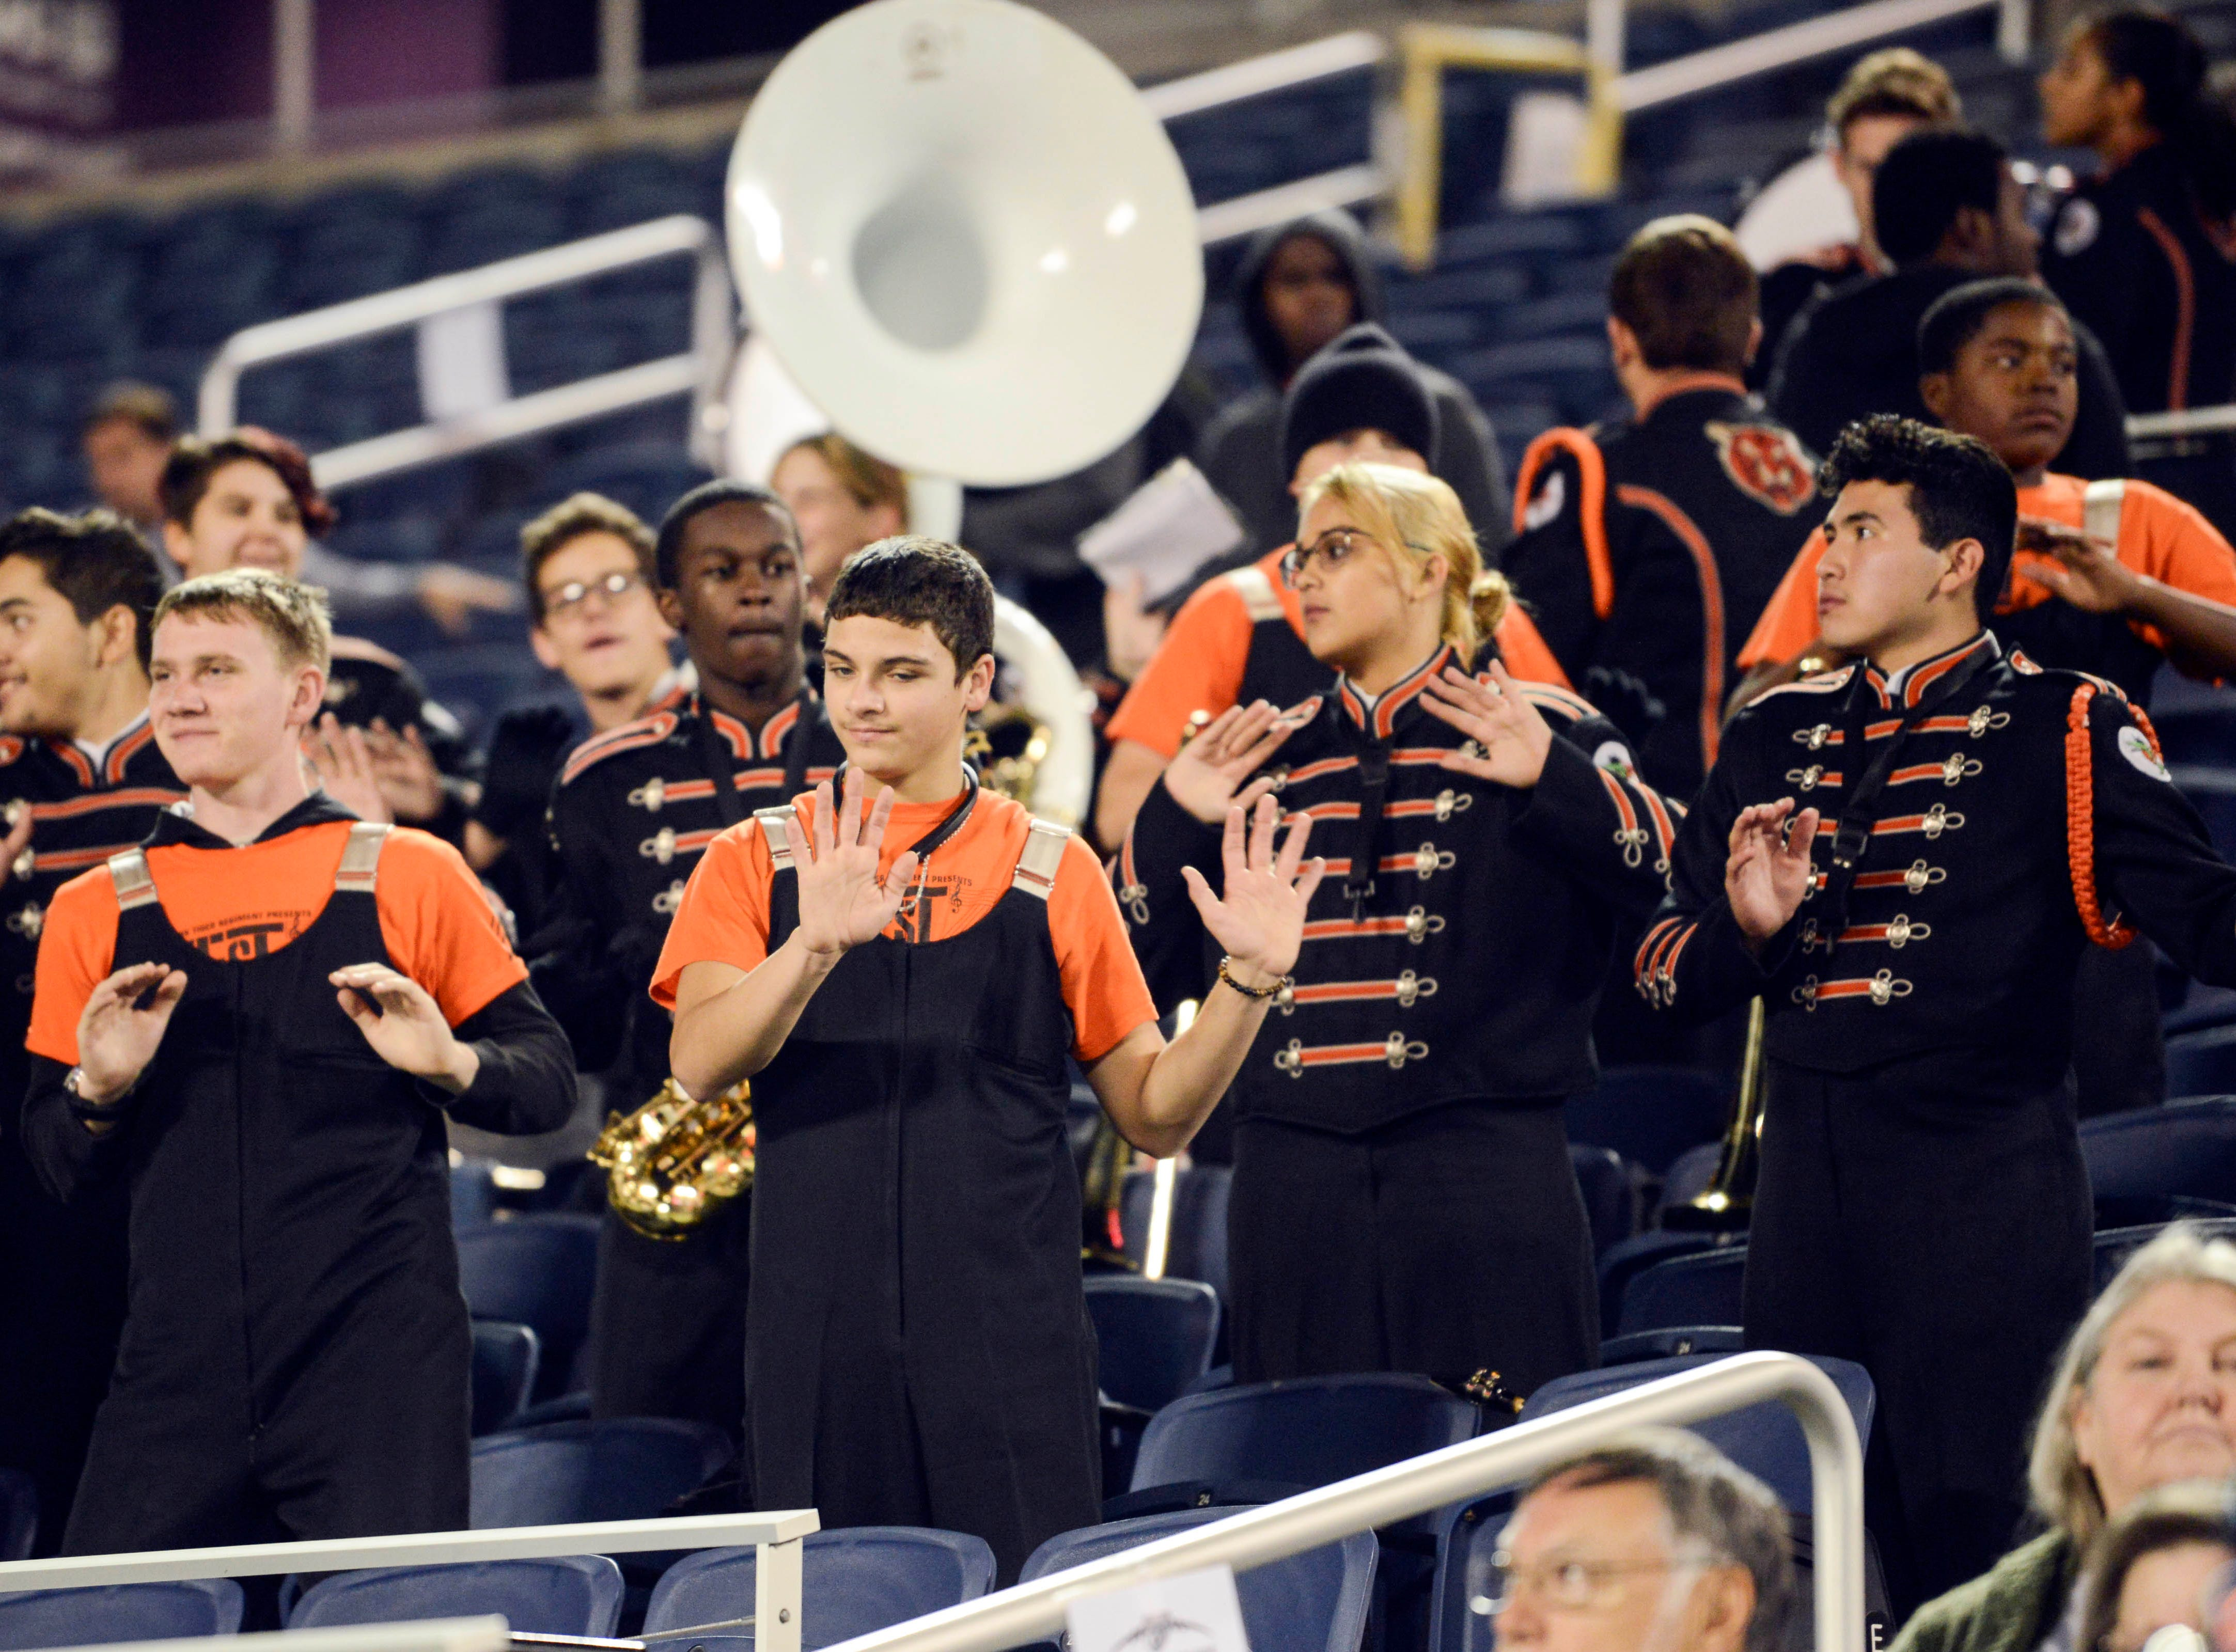 Members of the Cocoa High band perform during Thursday's Class 4A football state championship.